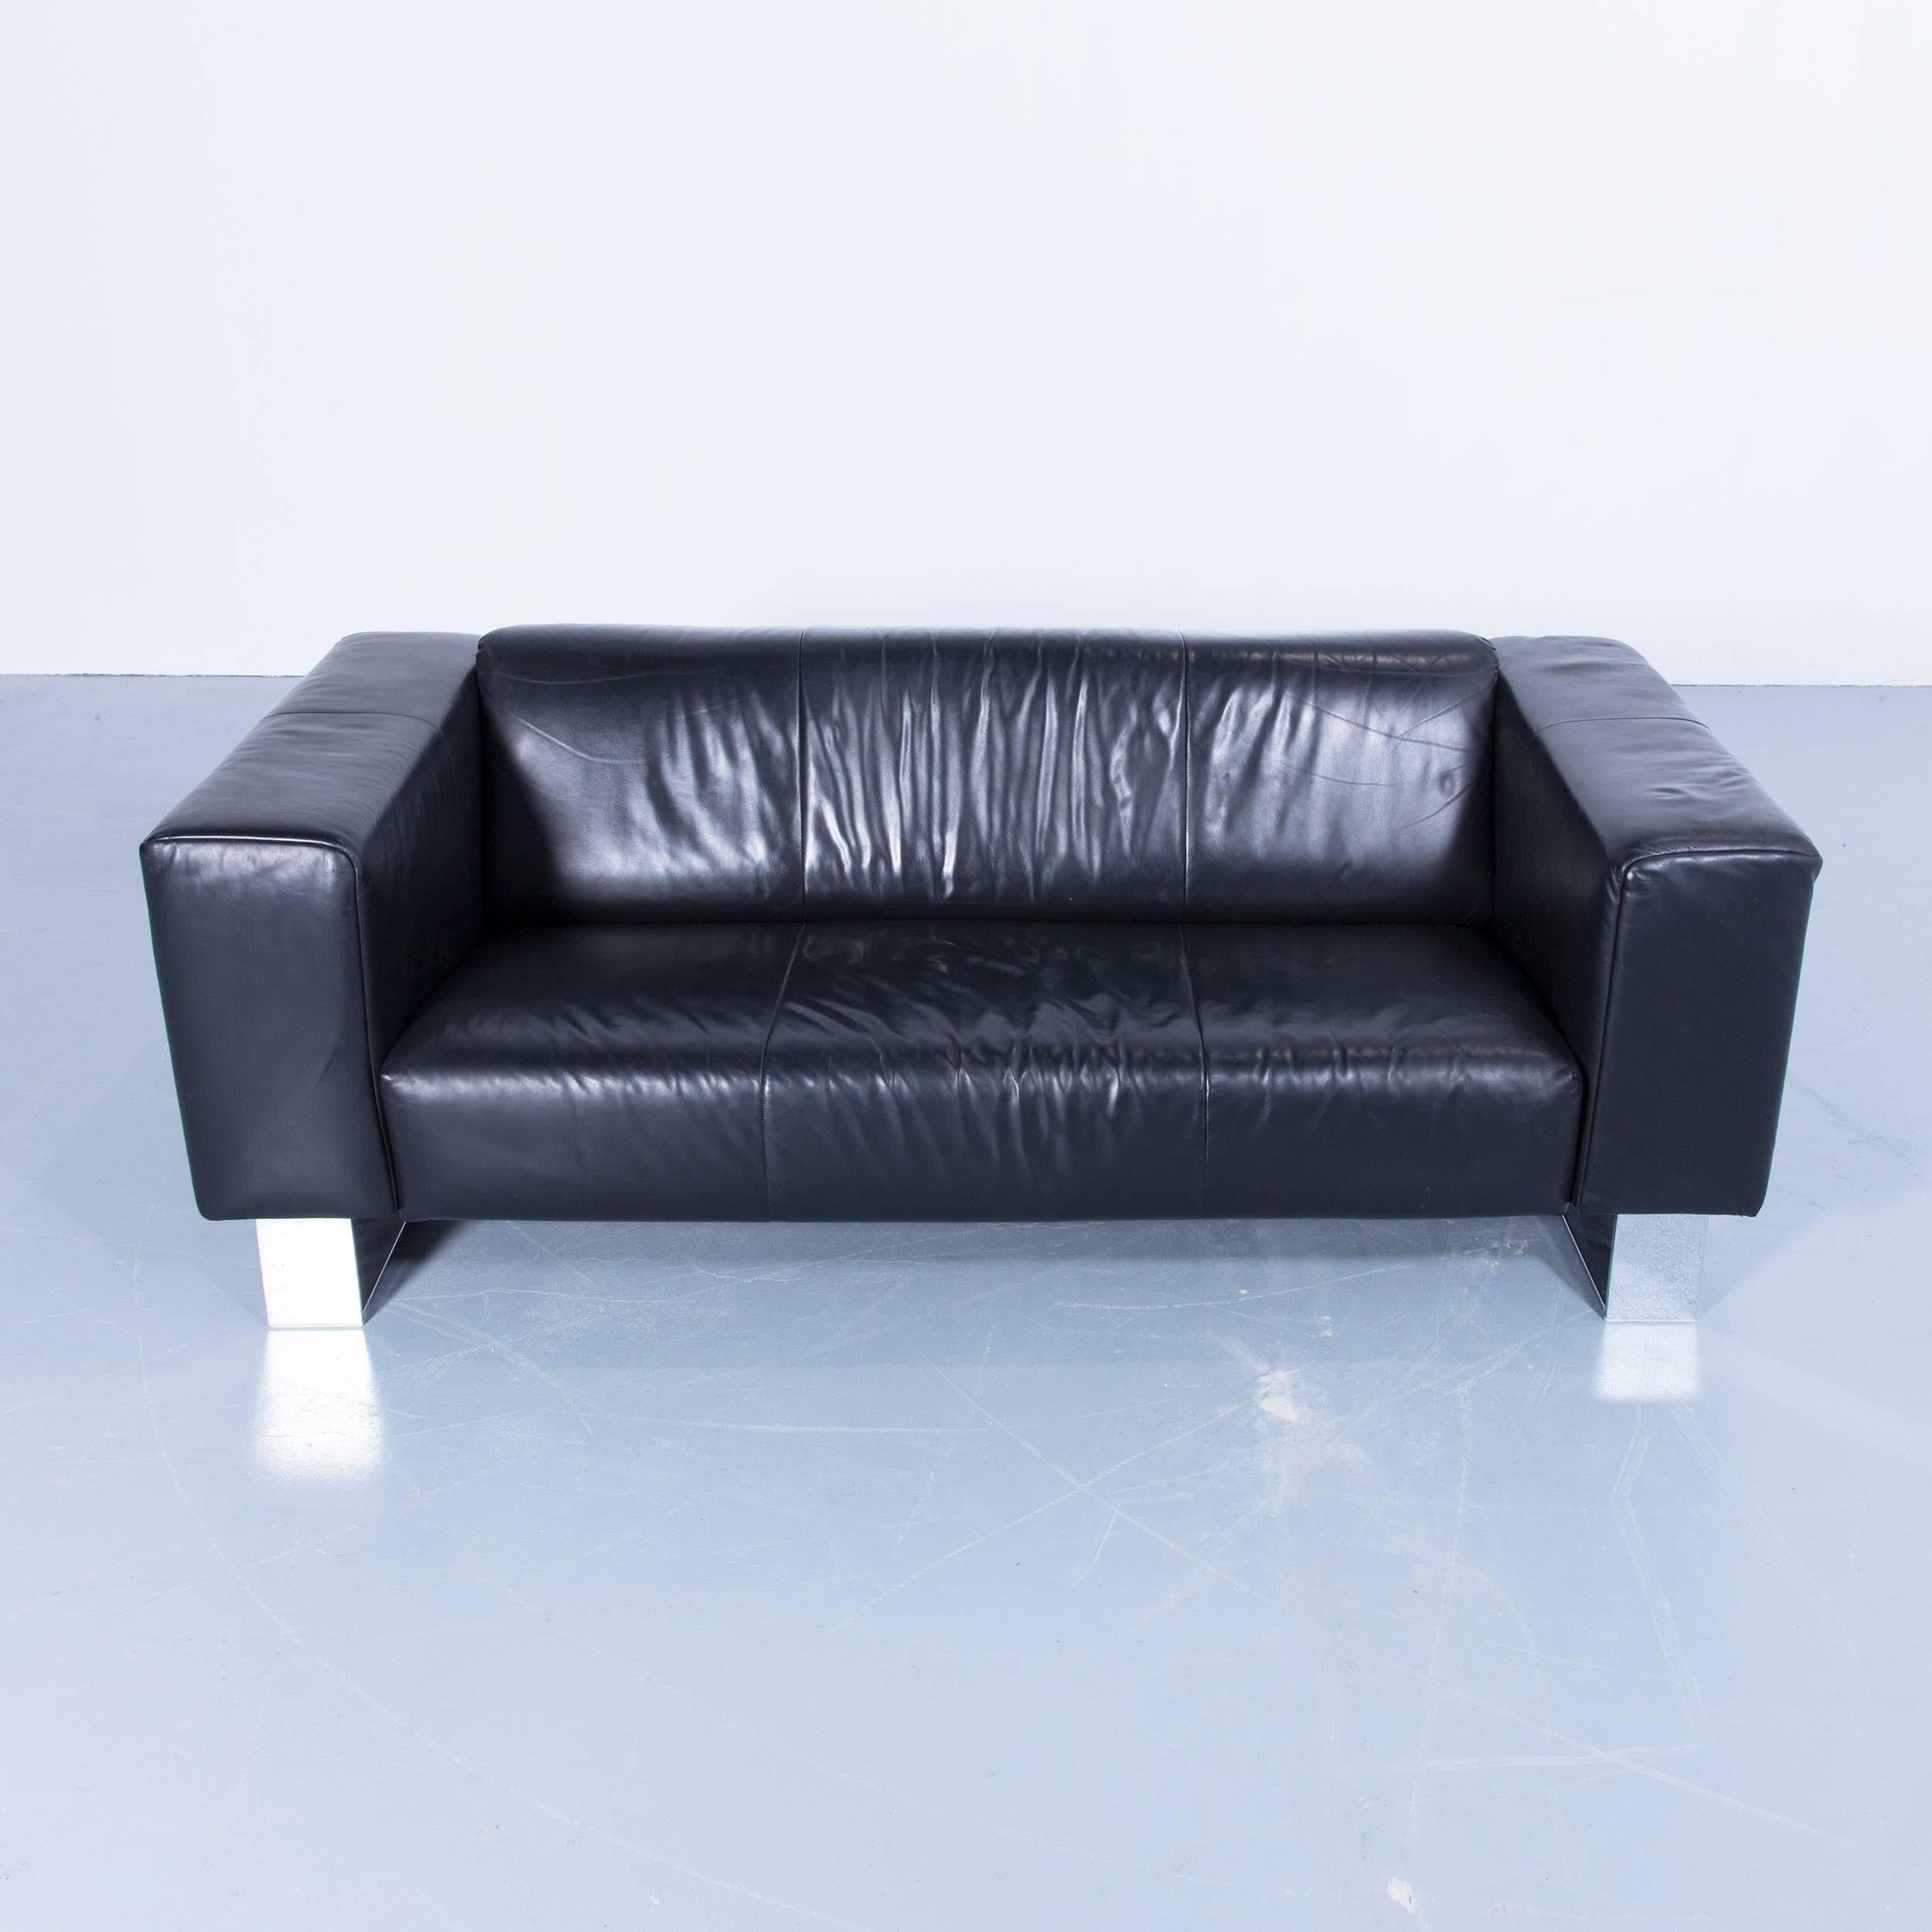 Benz Couch Rolf Benz Bmp Designer Sofa Leather Black Three Seat Couch Modern Metal Chrome